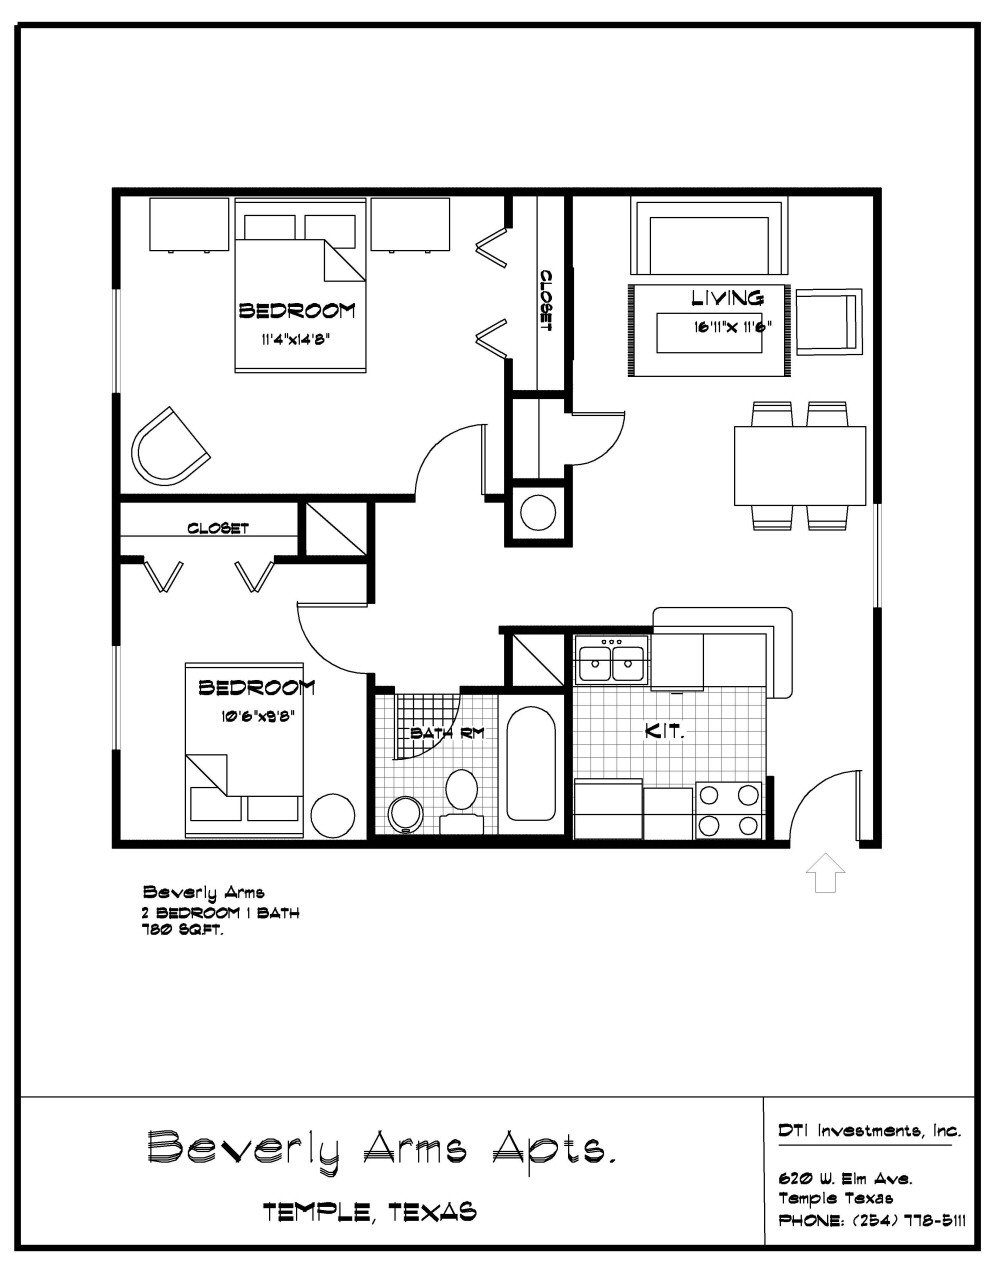 find a home temple 2 bedroom 1 bath 780 sf